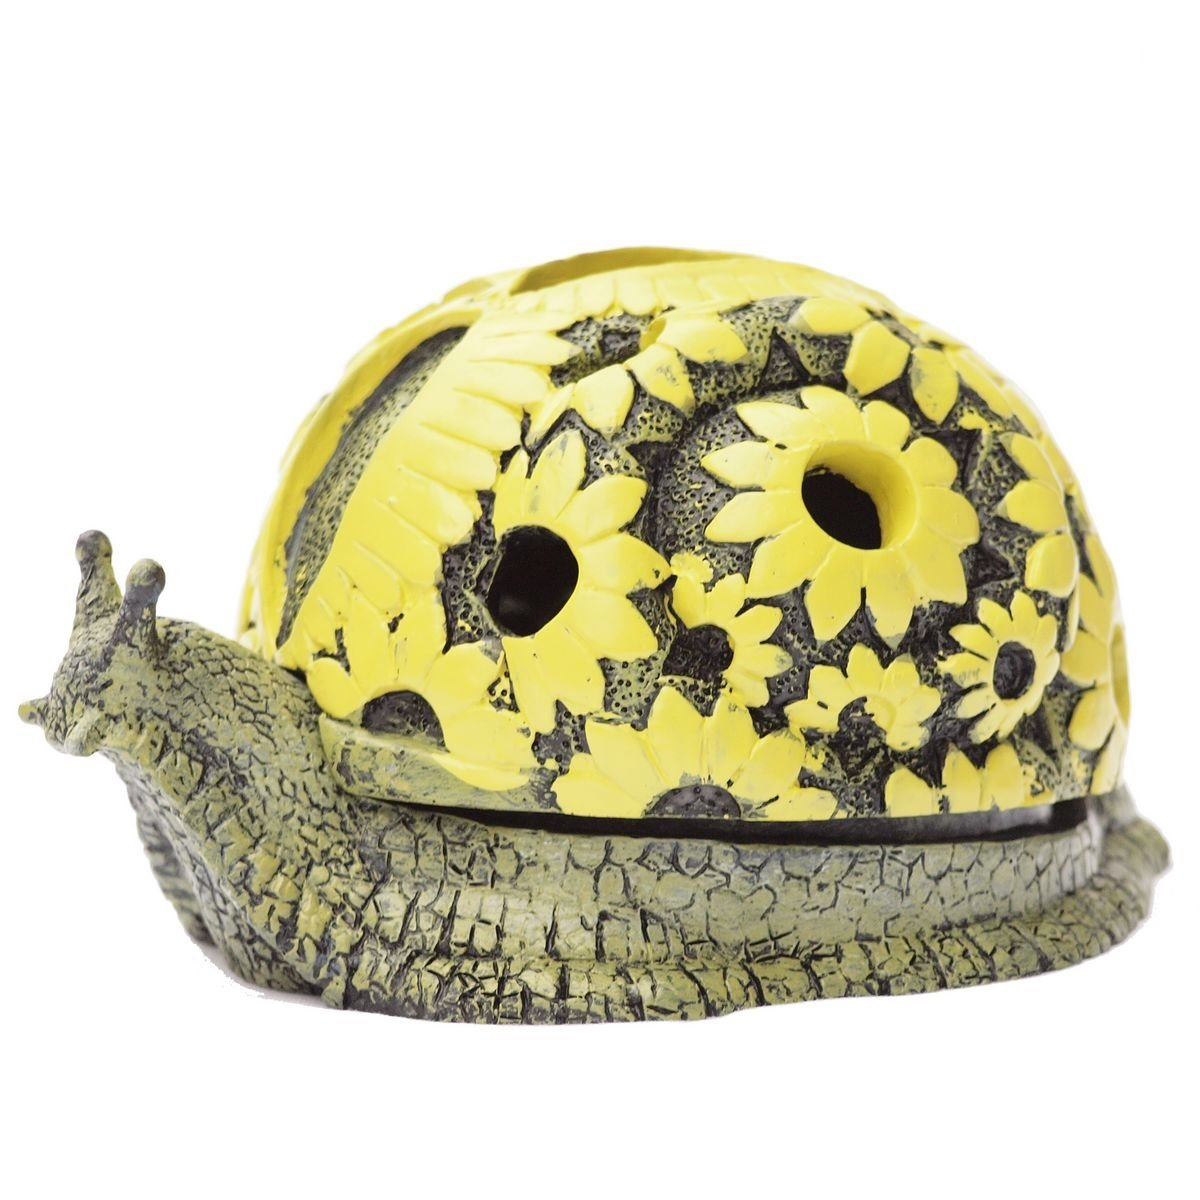 DHS S Turtle Outdoor Ashtray with Lid Decorative Cigeratte Ash Tray Unique Desk Gift for Home and Office